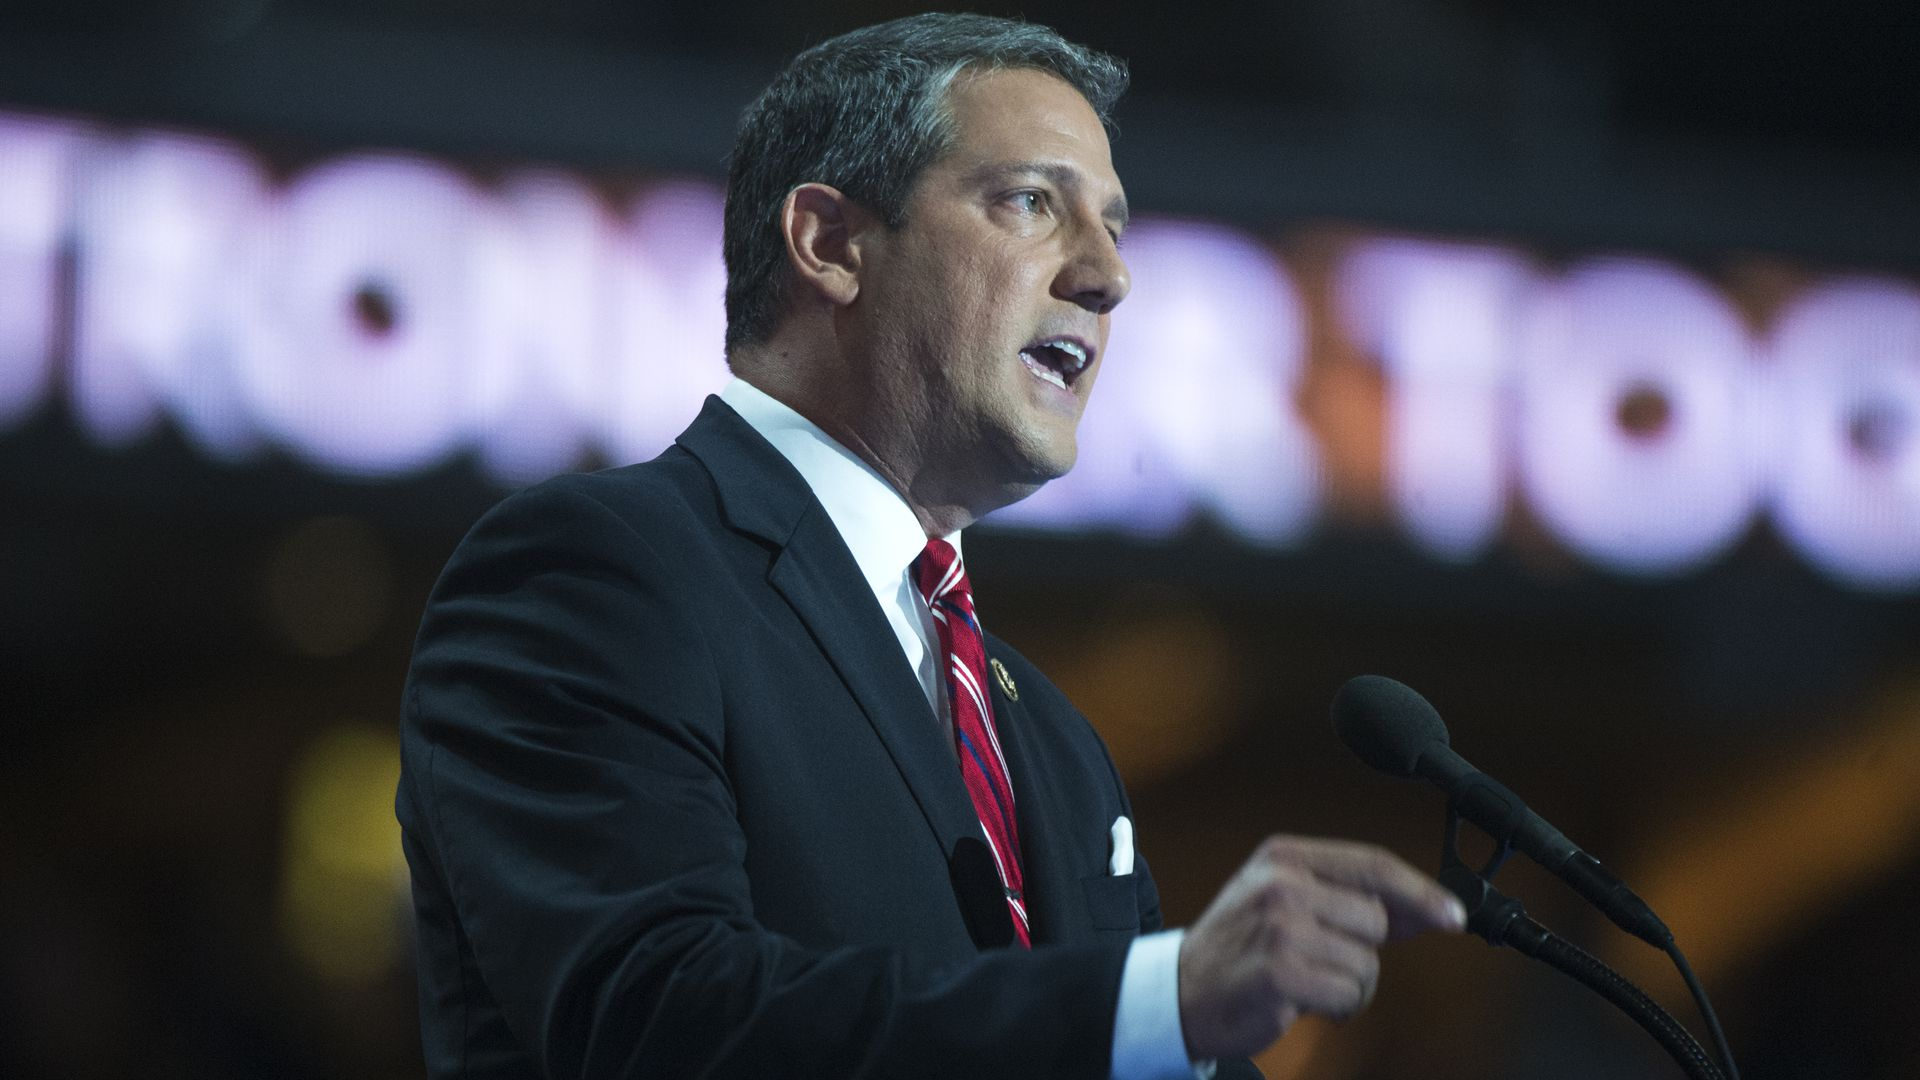 Everything you need to know about 2020 candidate Tim Ryan